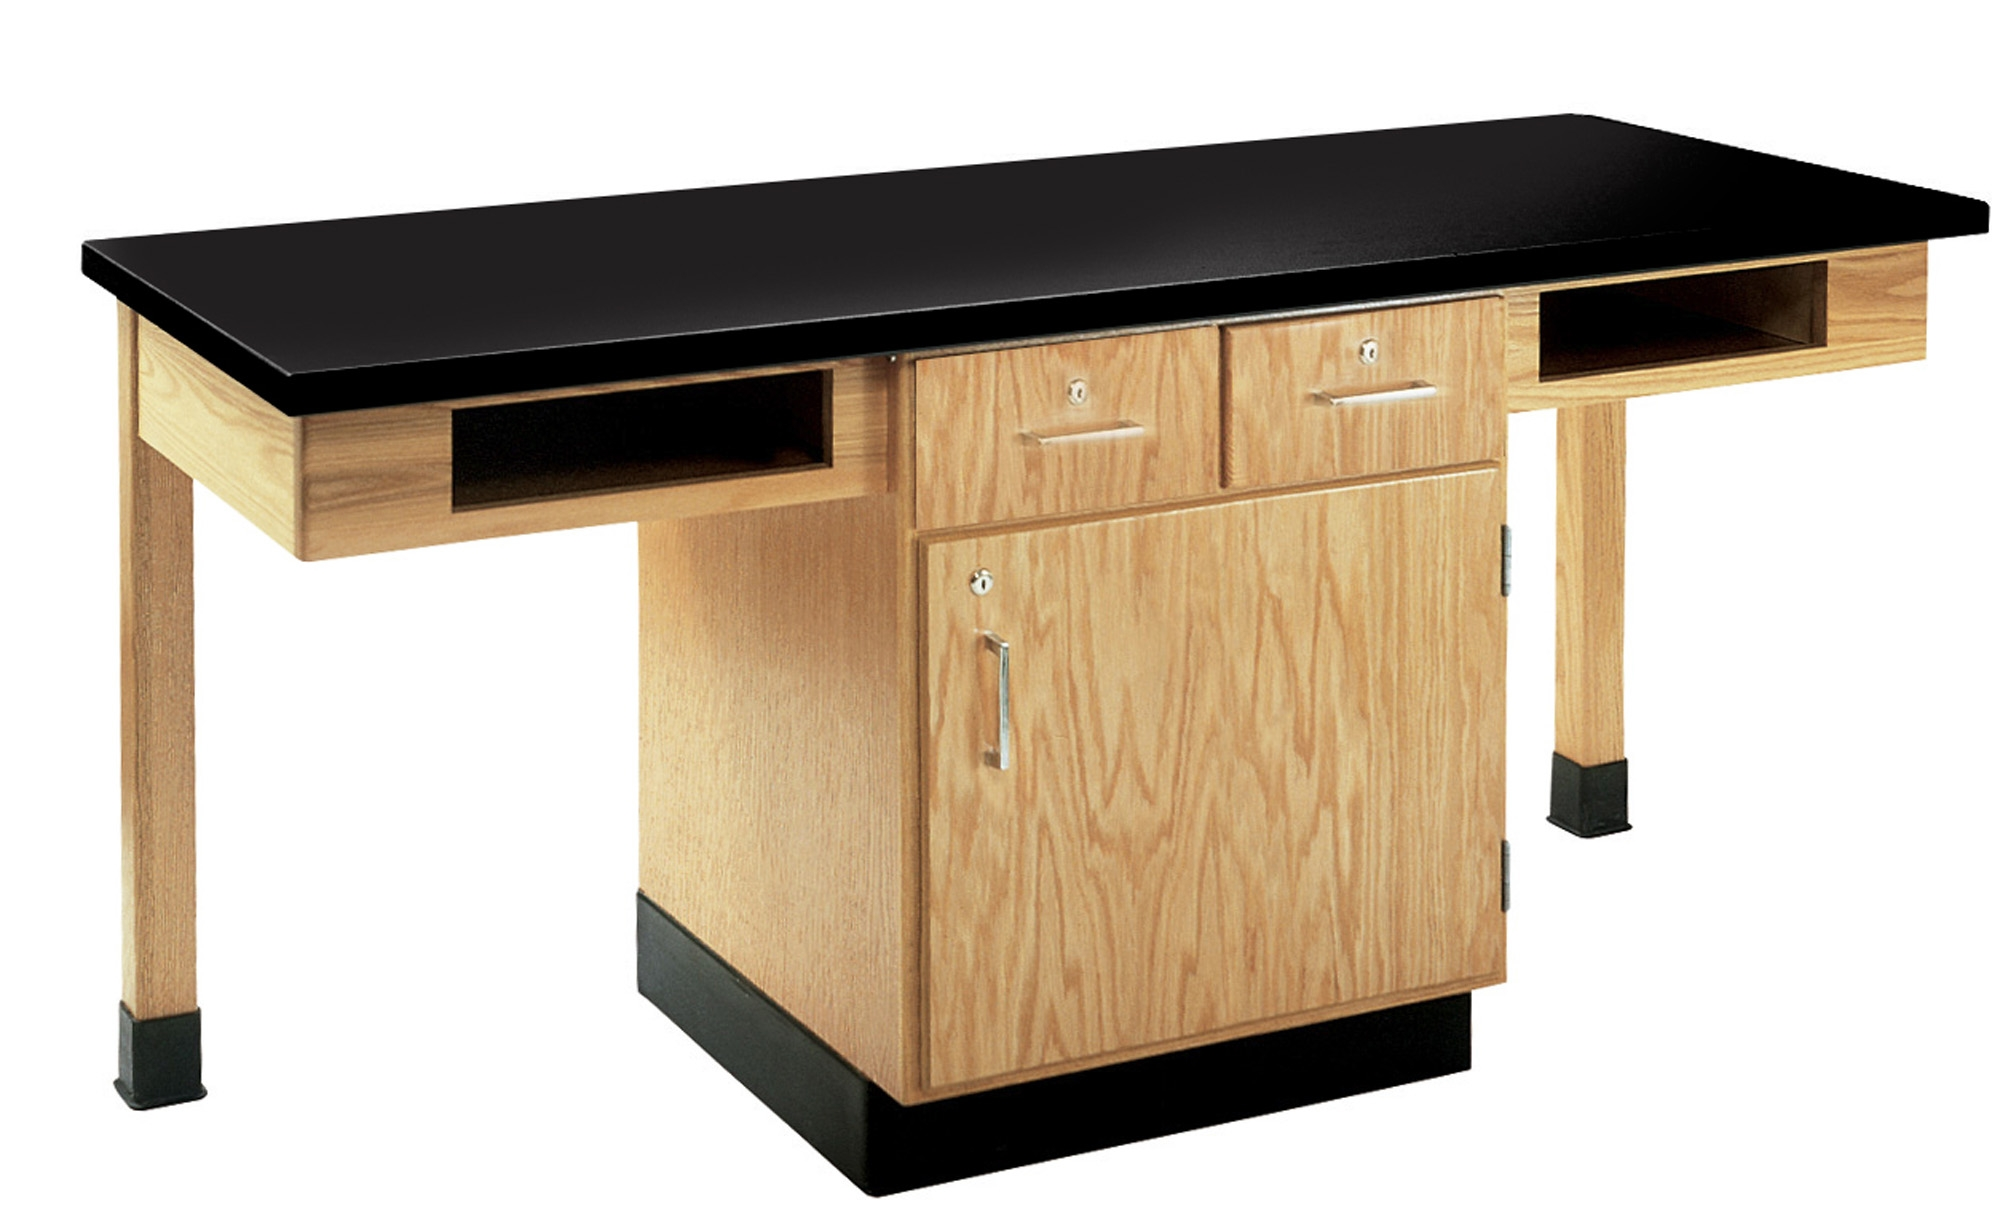 Diversified Woodcrafts 2 Station Table with Two Drawers, Bookcubbies - Plastic Laminate Top